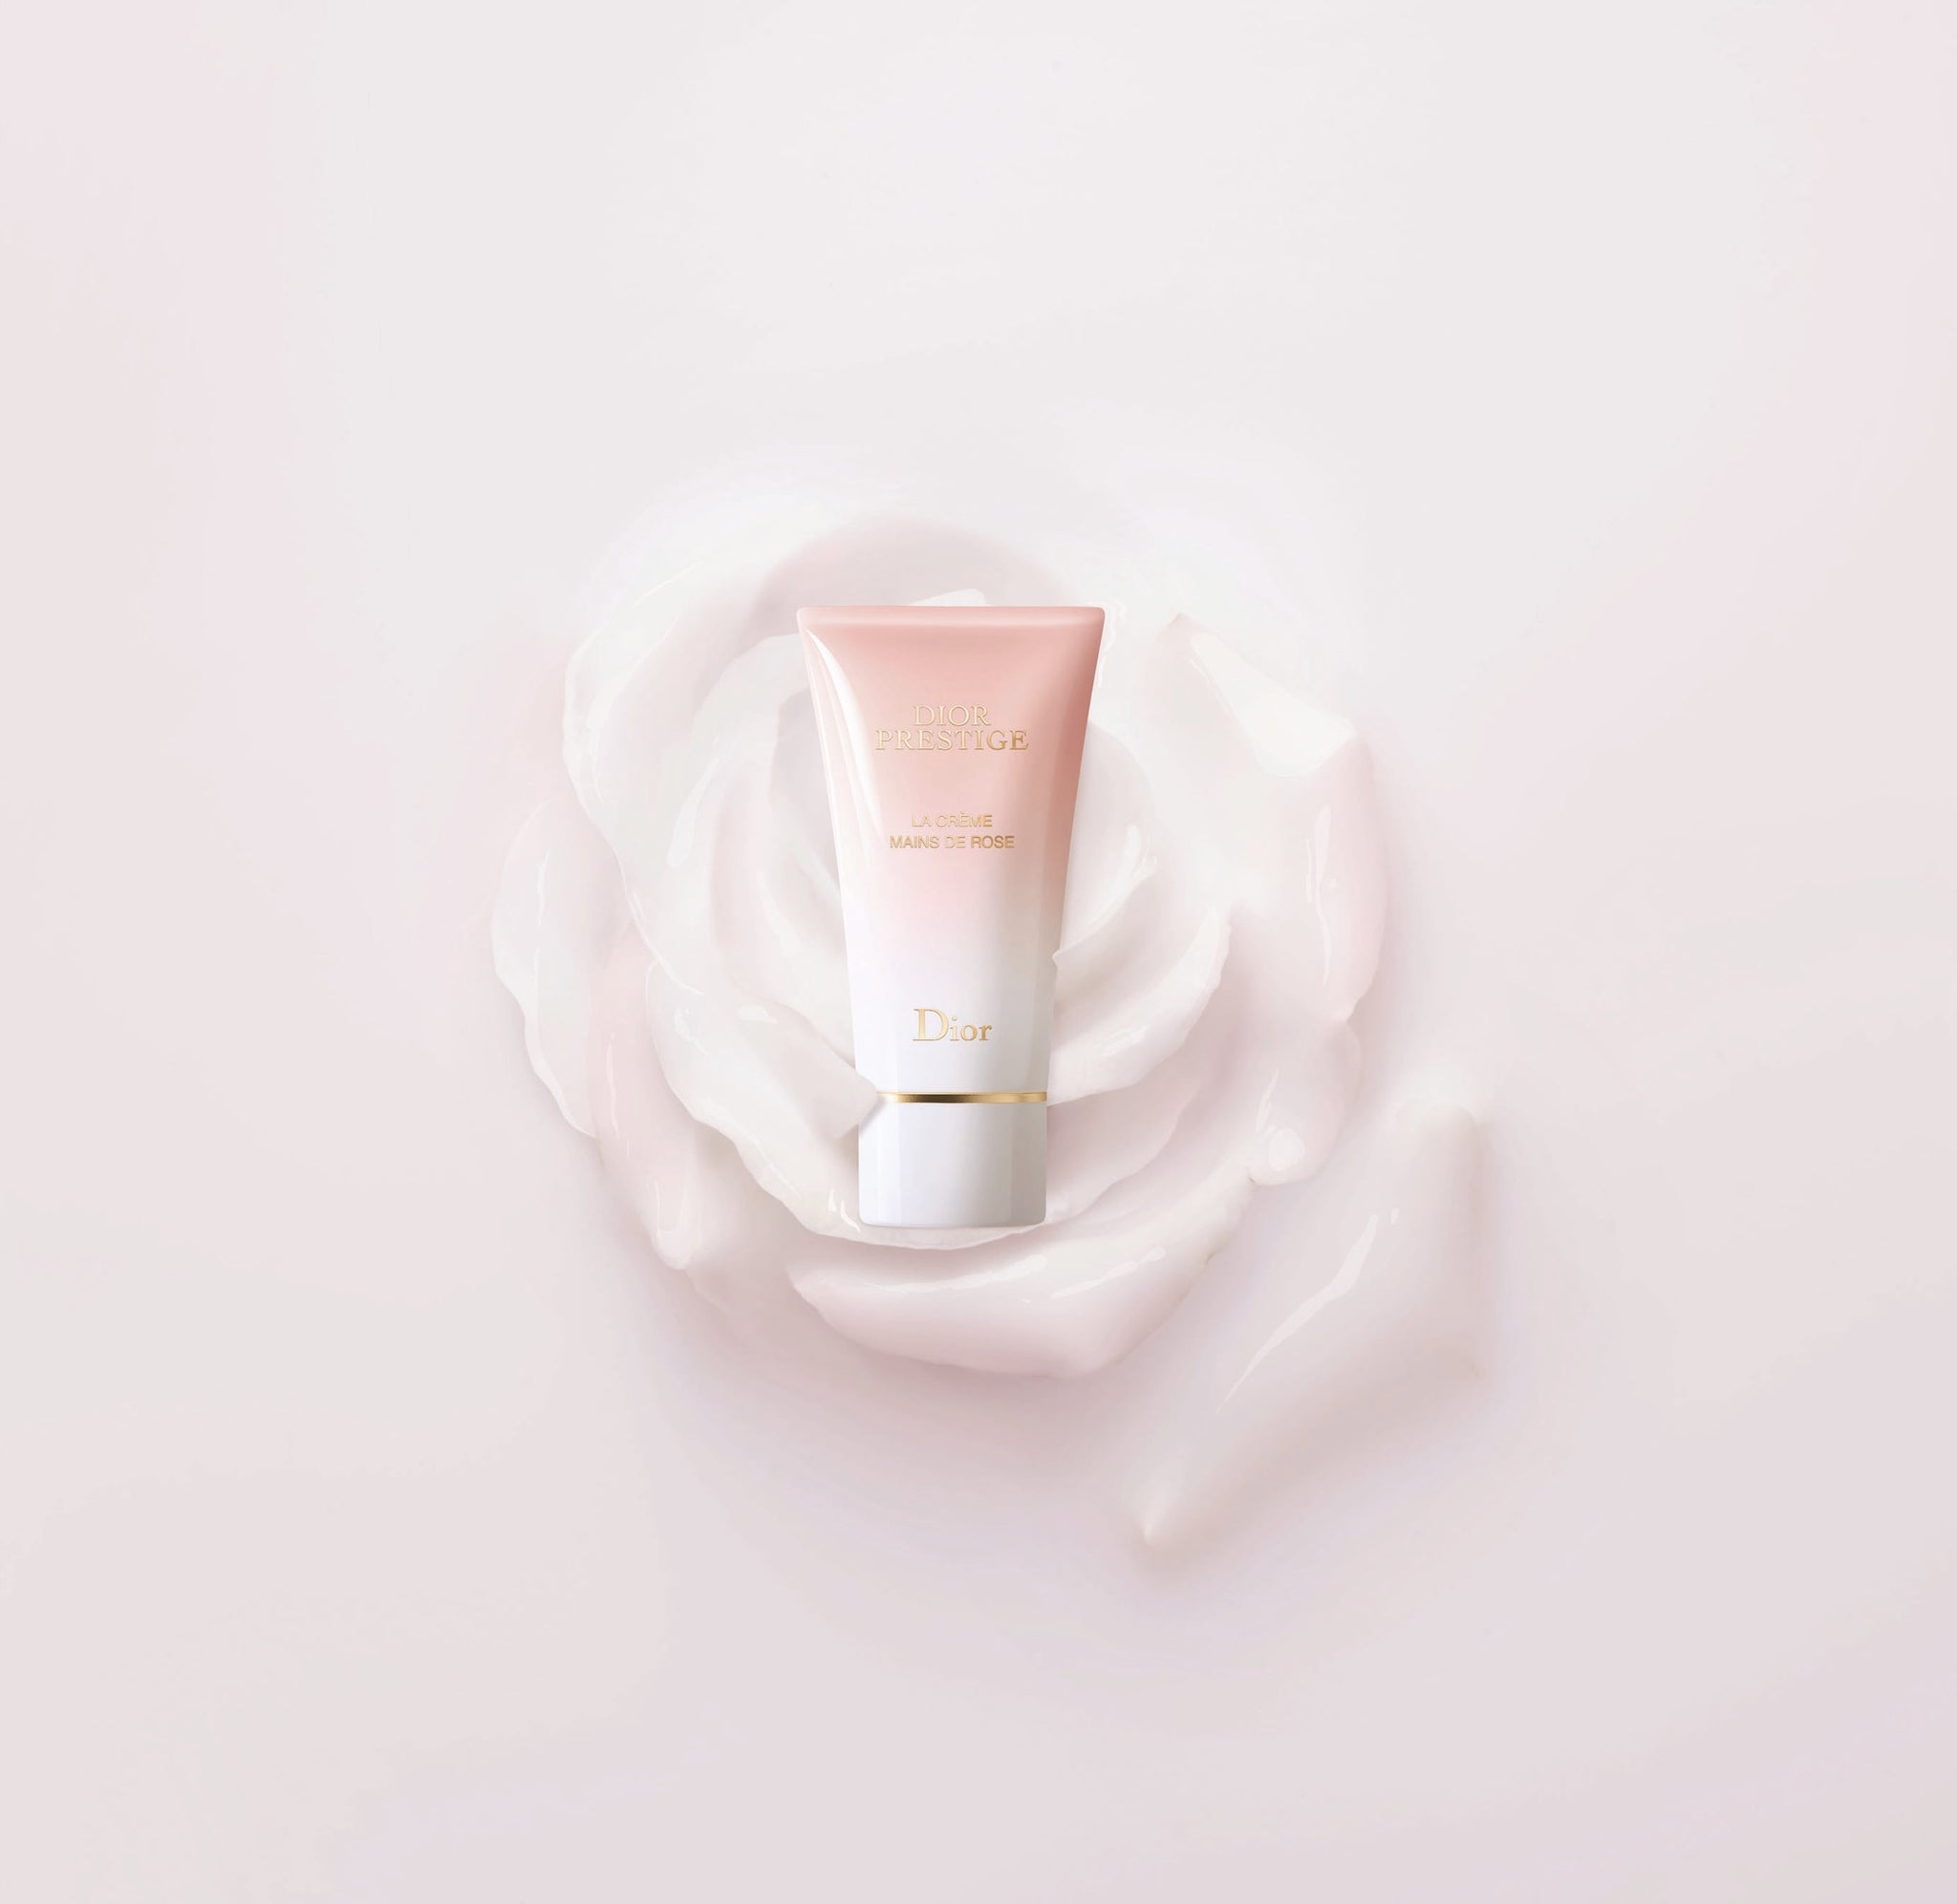 PRESTIGE LA CRÈME MAINS DE ROSE | Hand Creme - Exceptional Micro-Nutritive and Regenerating Care